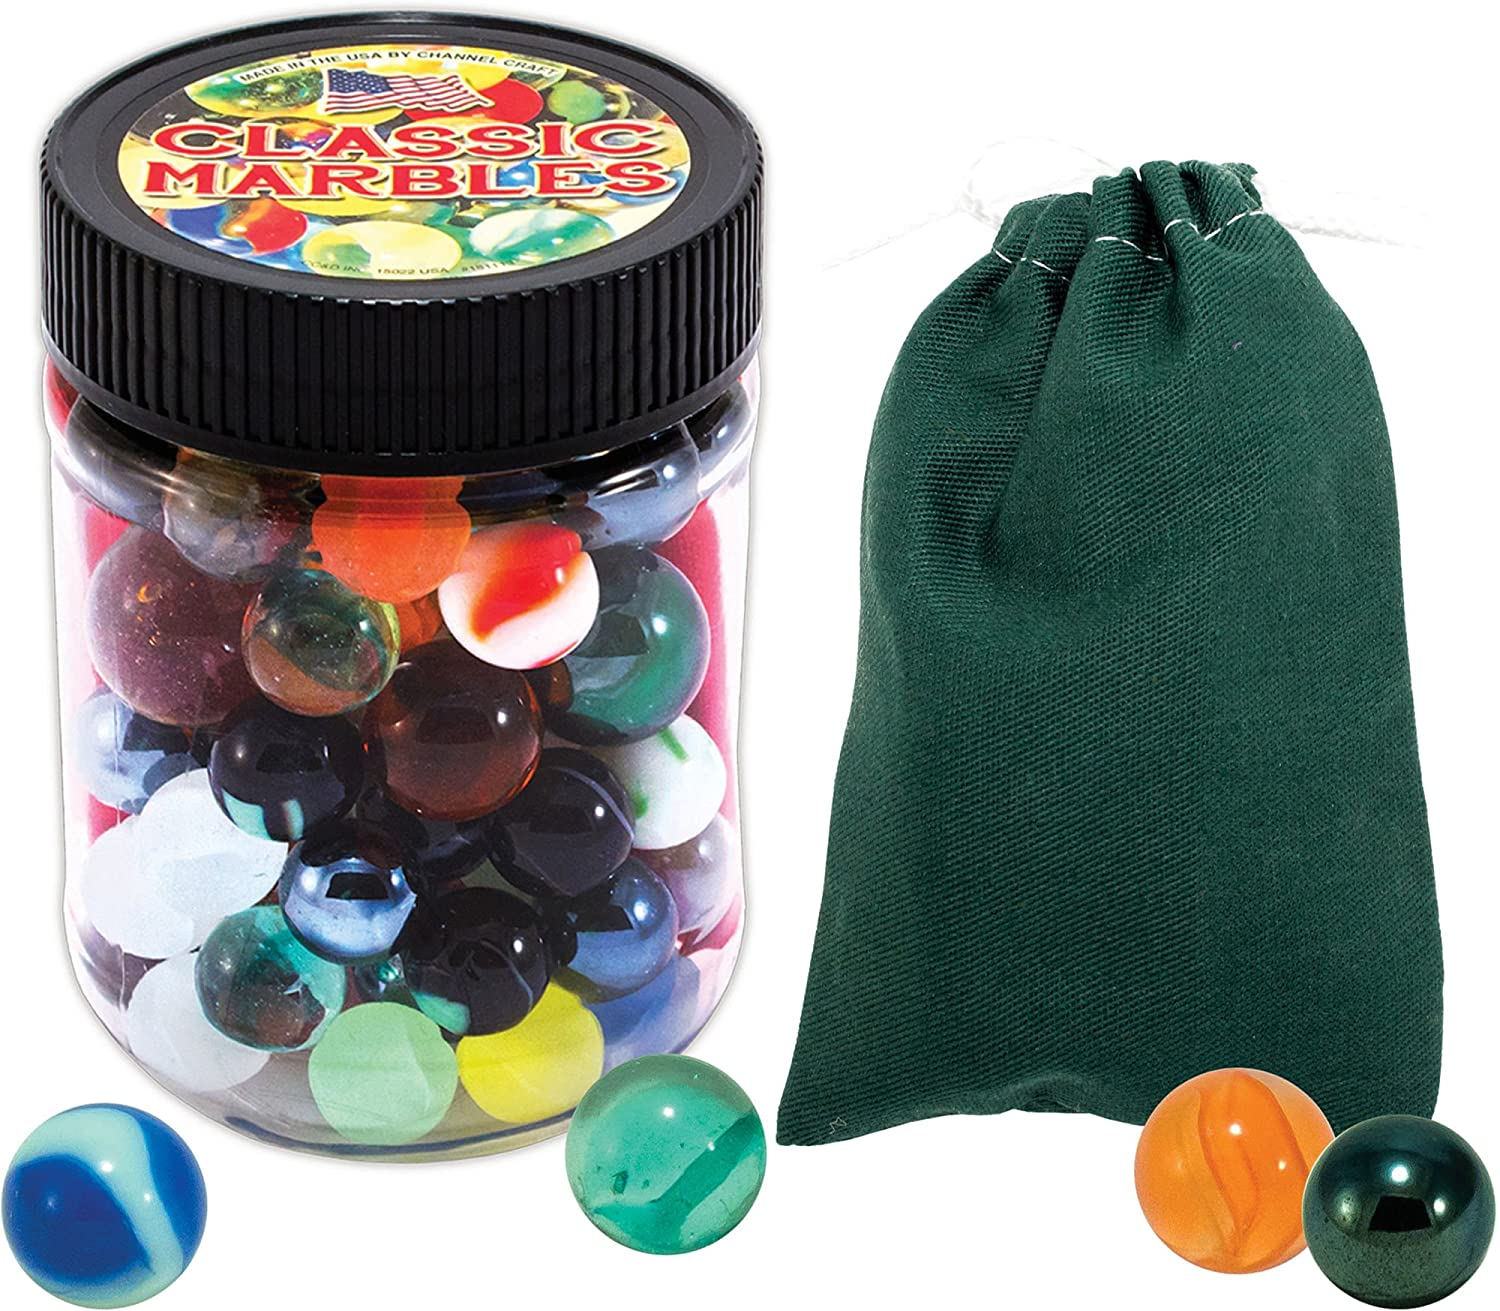 Color Canvas Pouch Toy Jar 48 Marbles with Shooters Marbles The Shooting Game